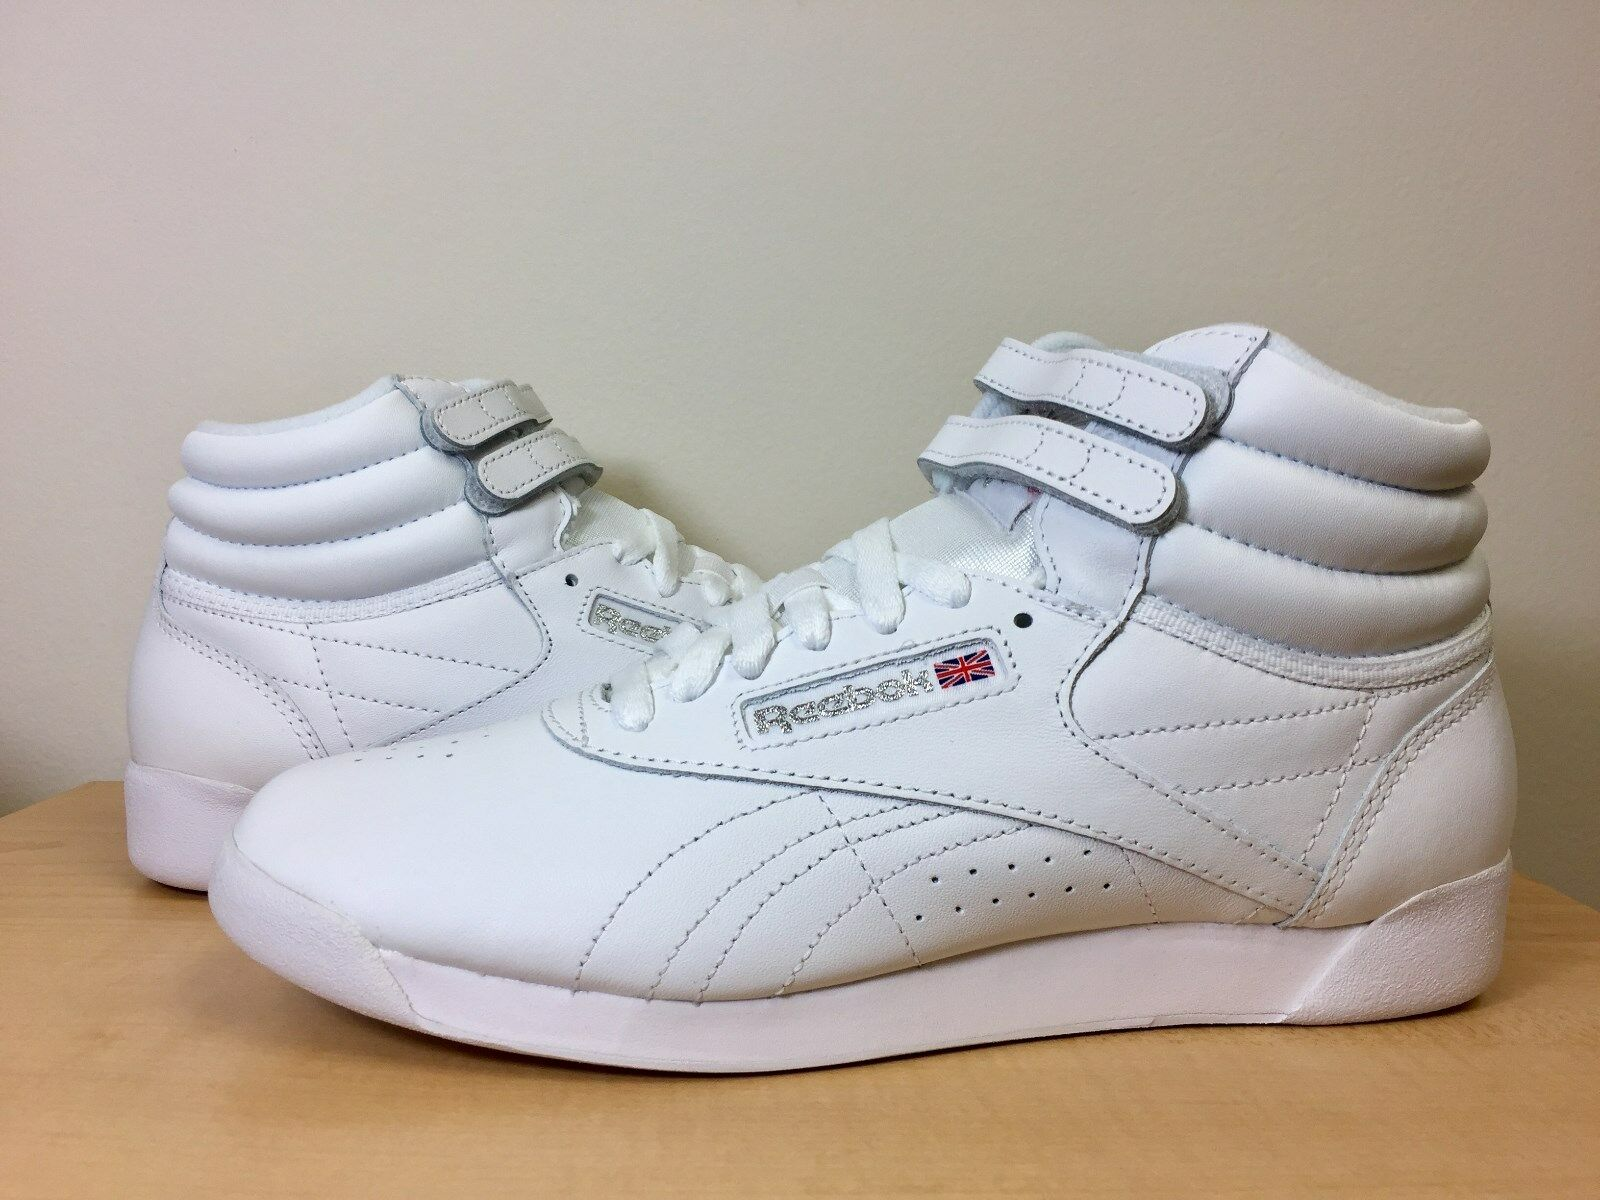 Buy Womens Classic Reebok Freestyle Hi Top Athletic Shoe Size 8 1 2 ... 9512909a81